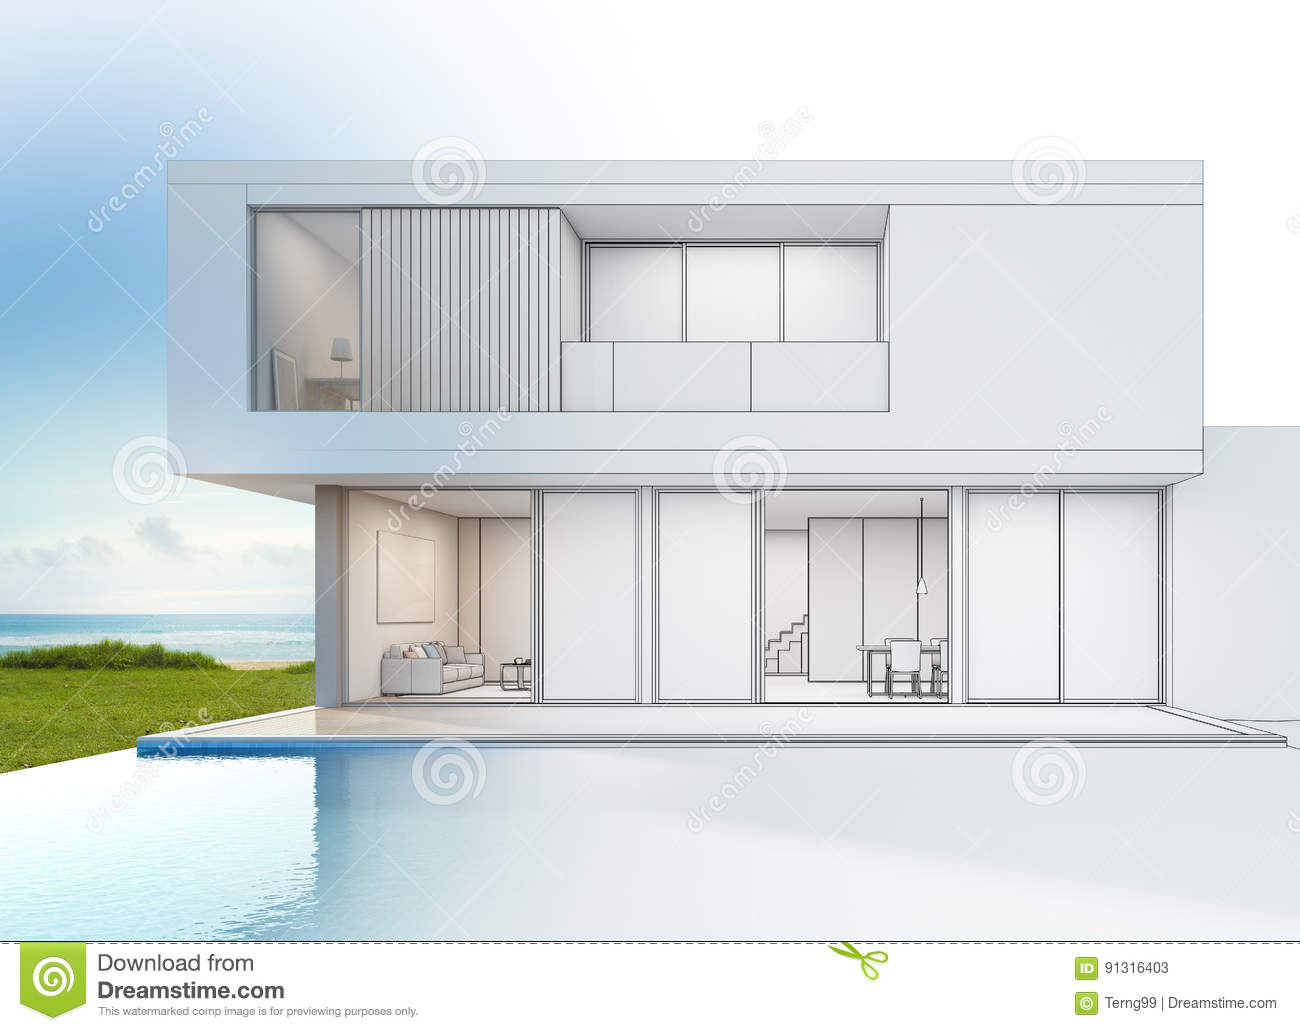 Modern Luxury Beach House With Sea View Swimming Pool, Sketch Design ...